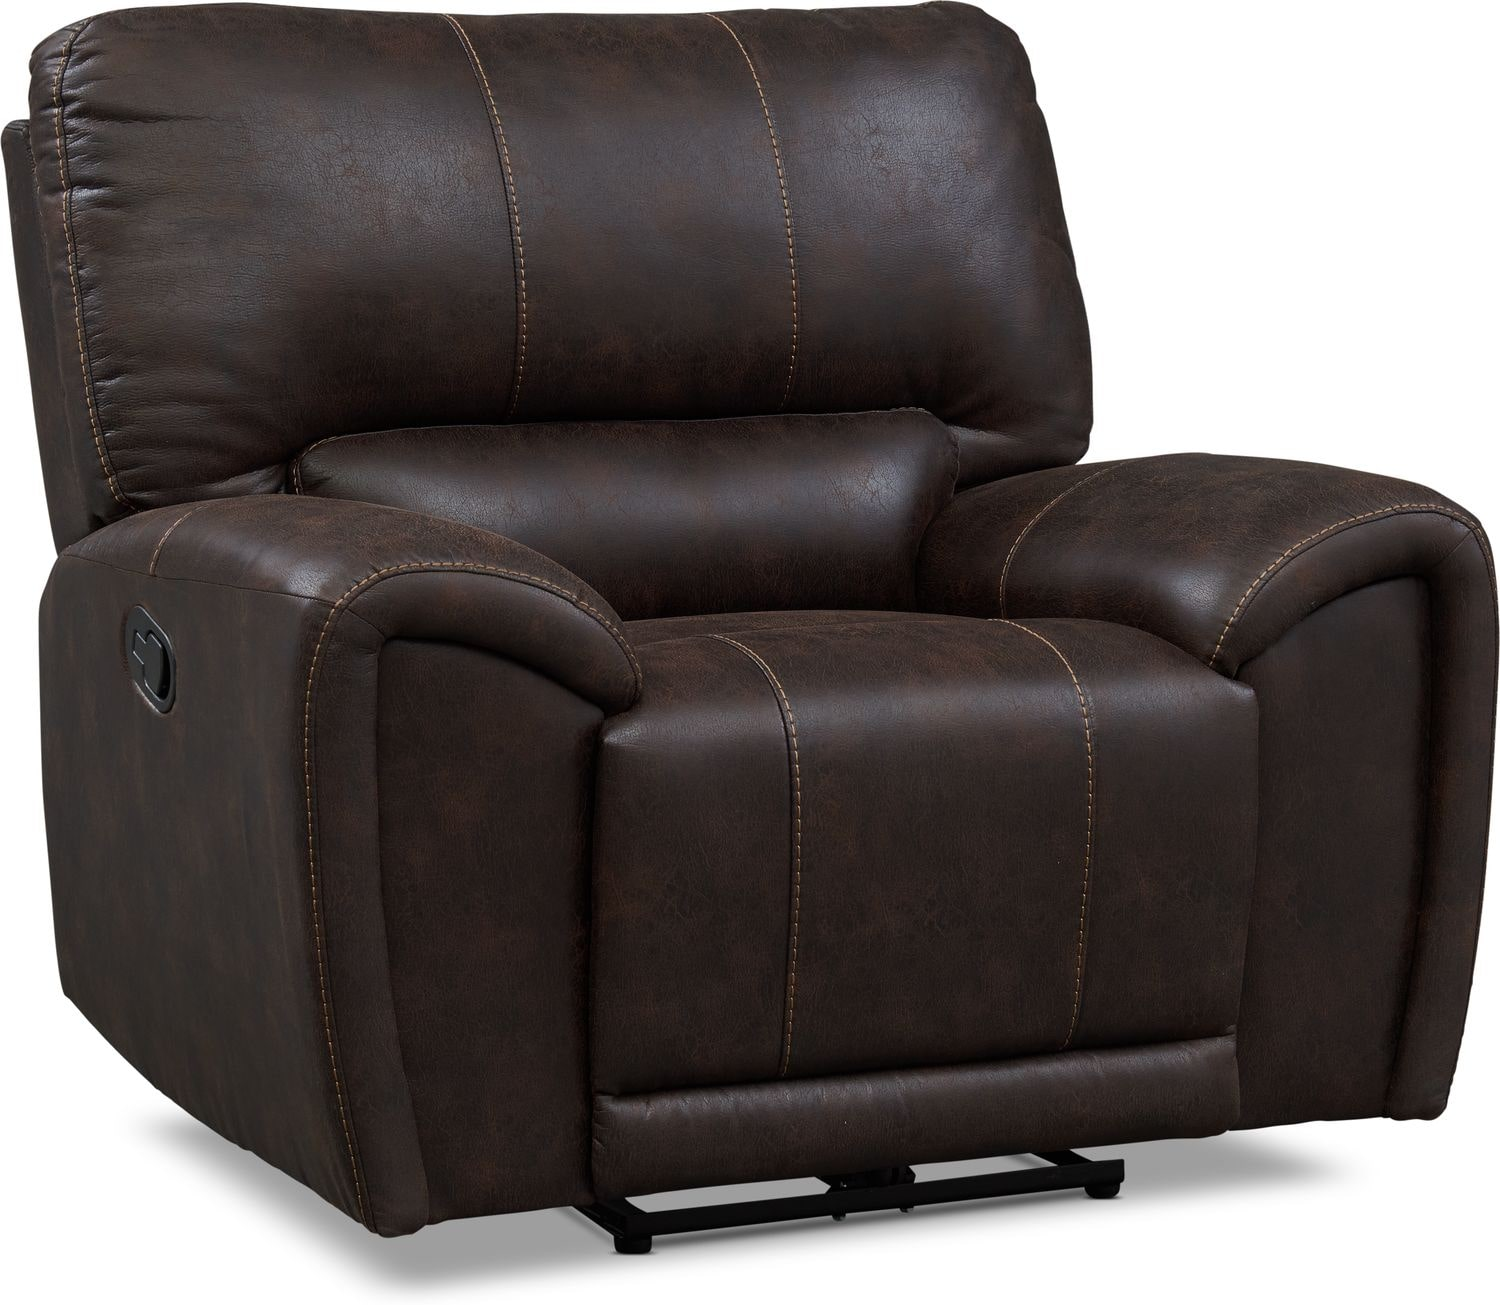 Living Room Furniture - Gallant Manual Recliner